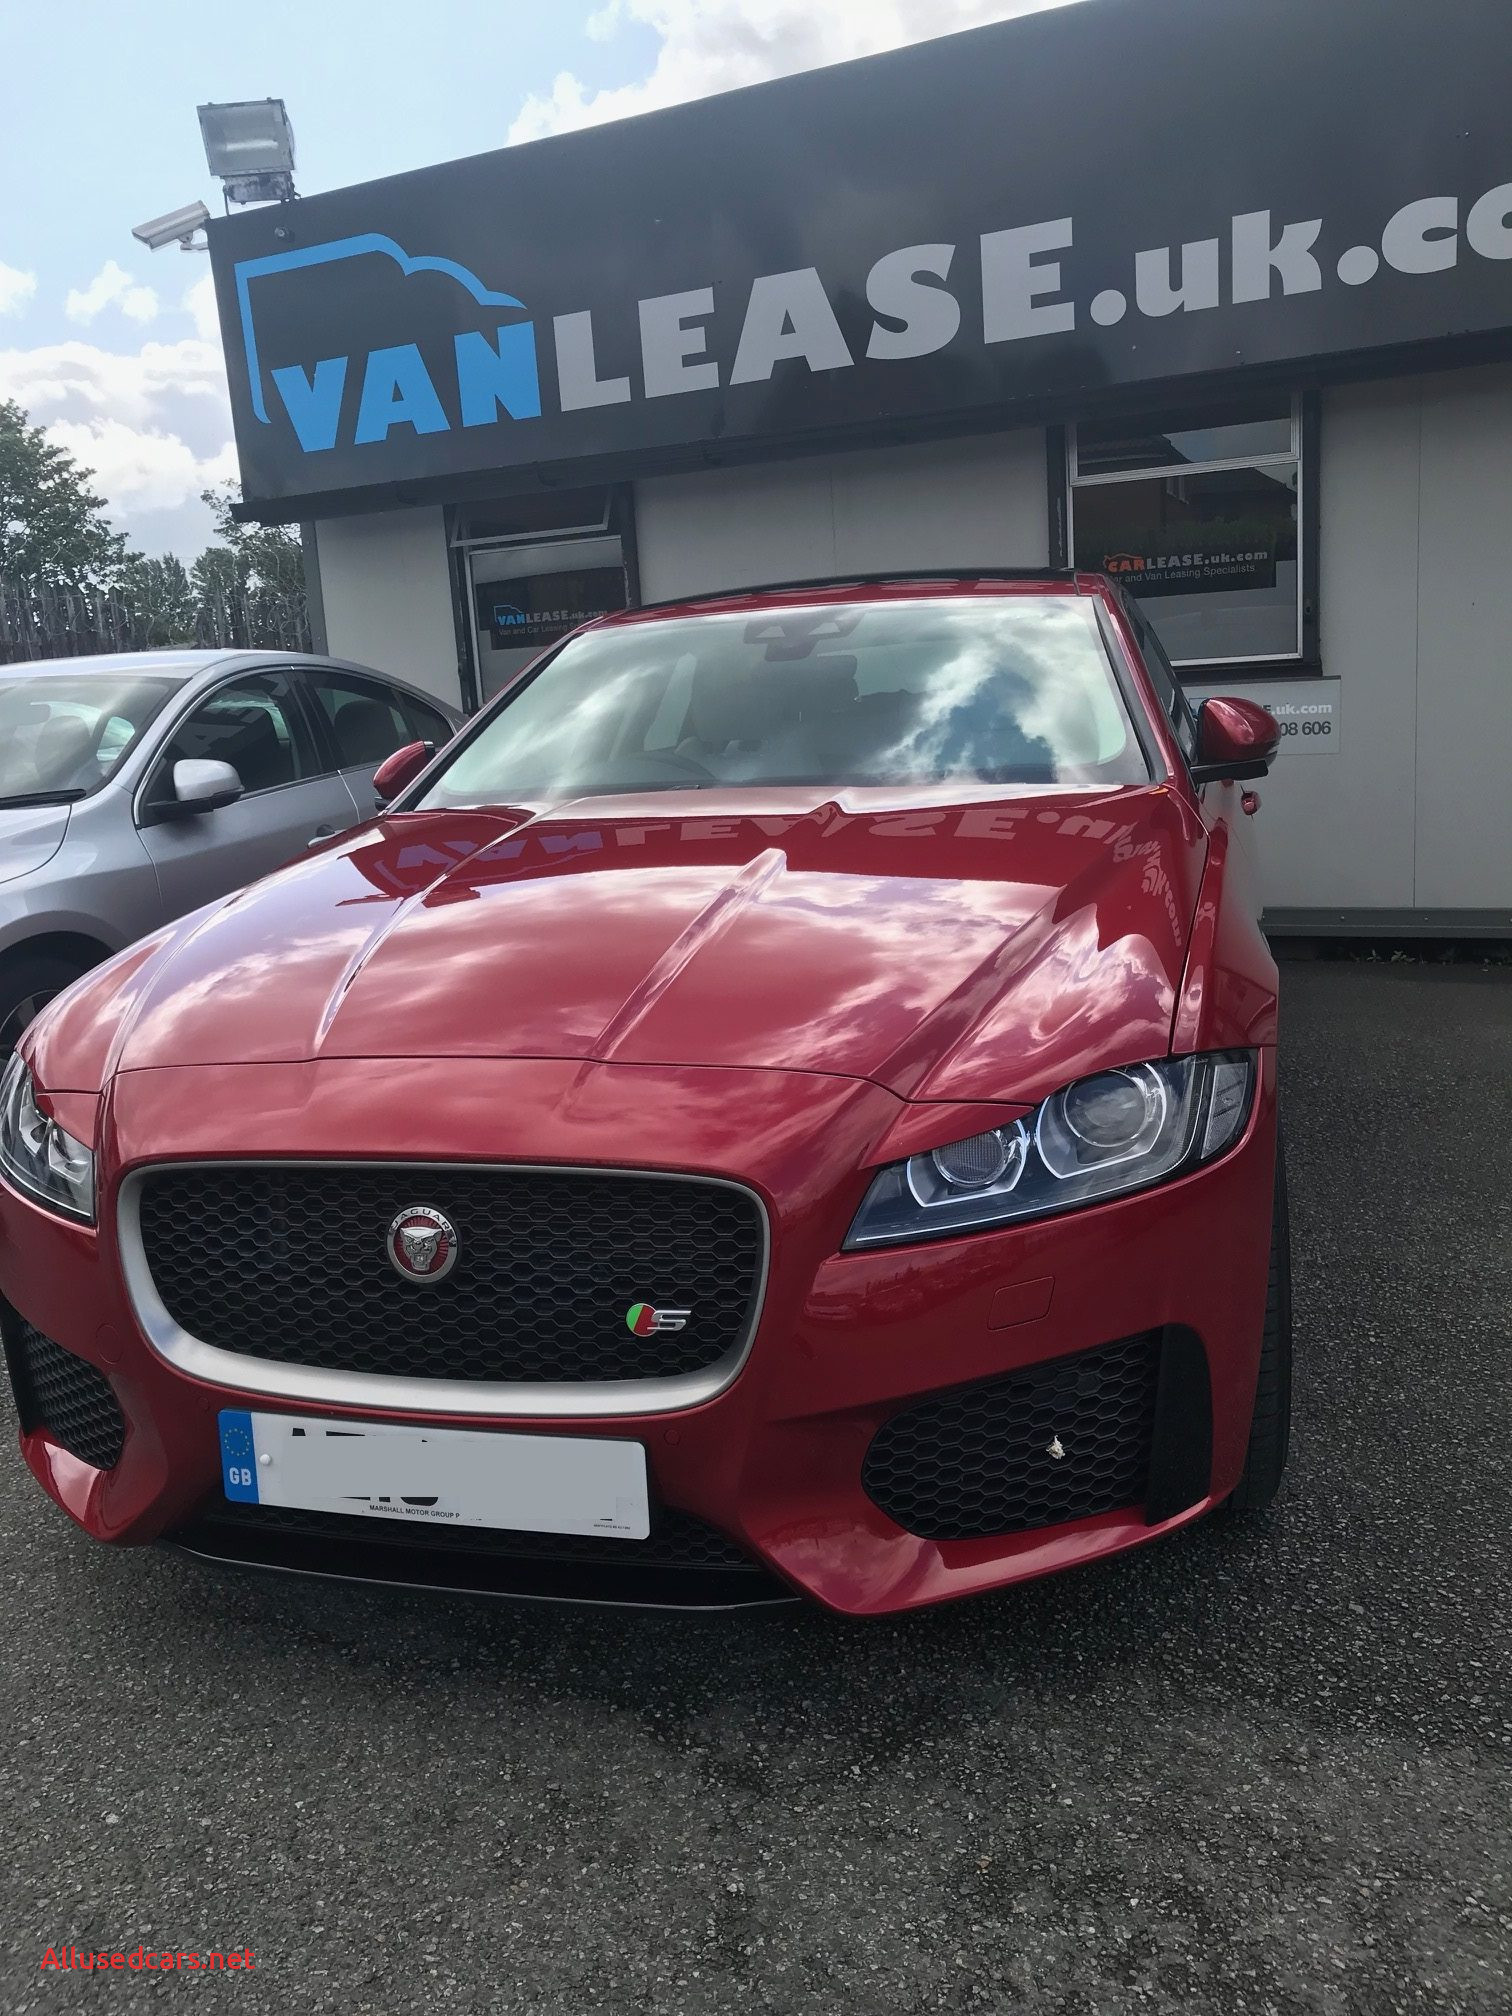 Low Milage Lease Unique In Review Jaguar Xf 3 0d V6 S Diesel Auto Carlease Uk